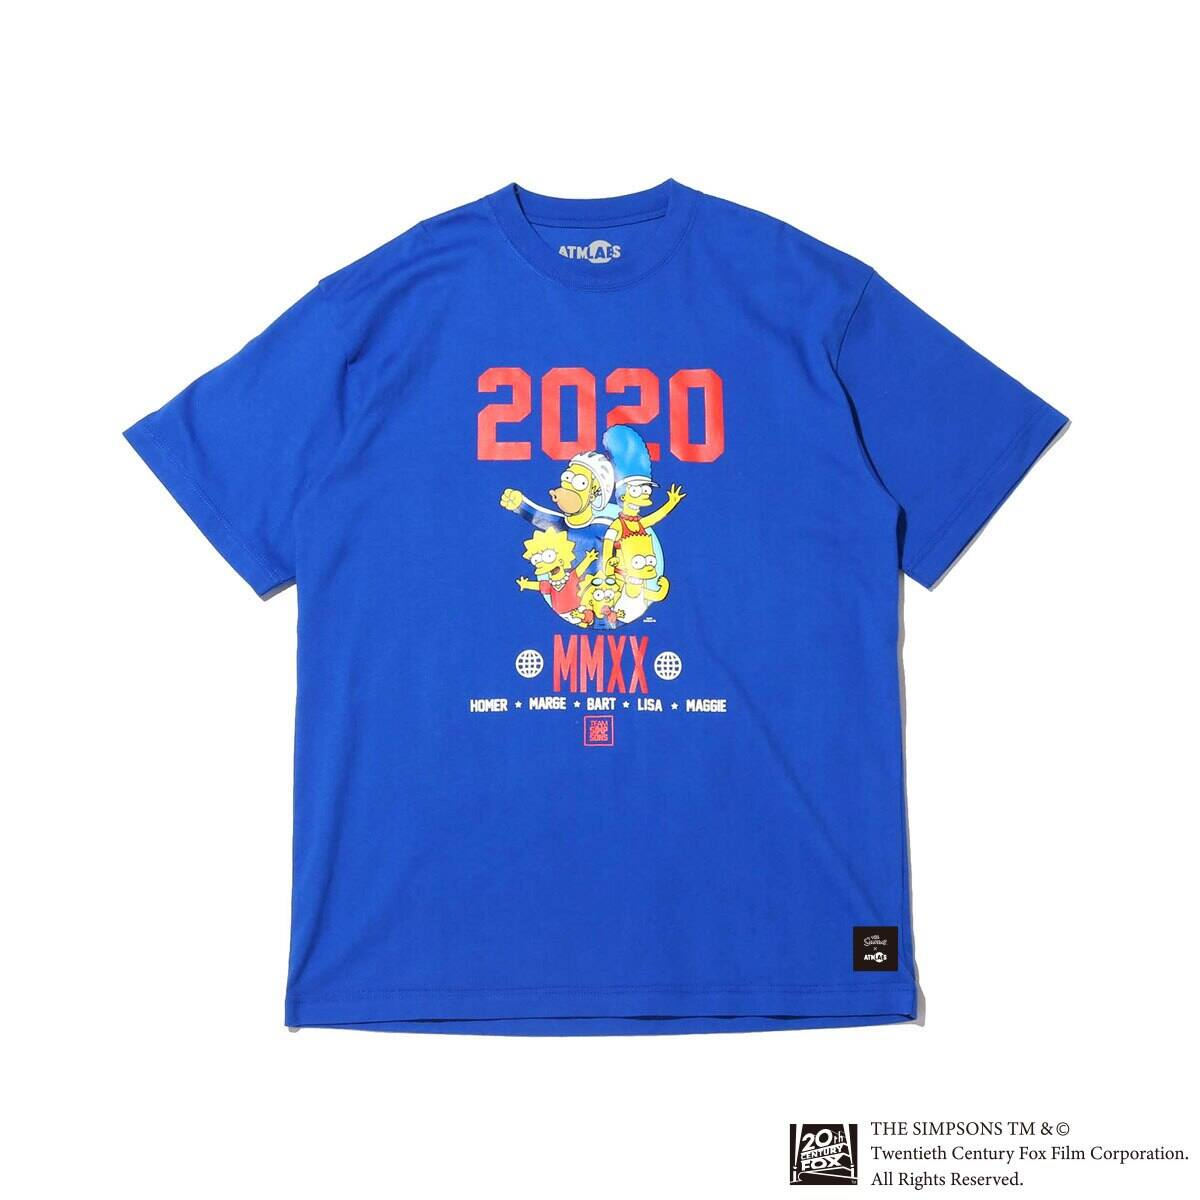 ATMOS LAB x THE SIMPSONS 2020 FAMILY TEE ROYAL 20SP-S_photo_large